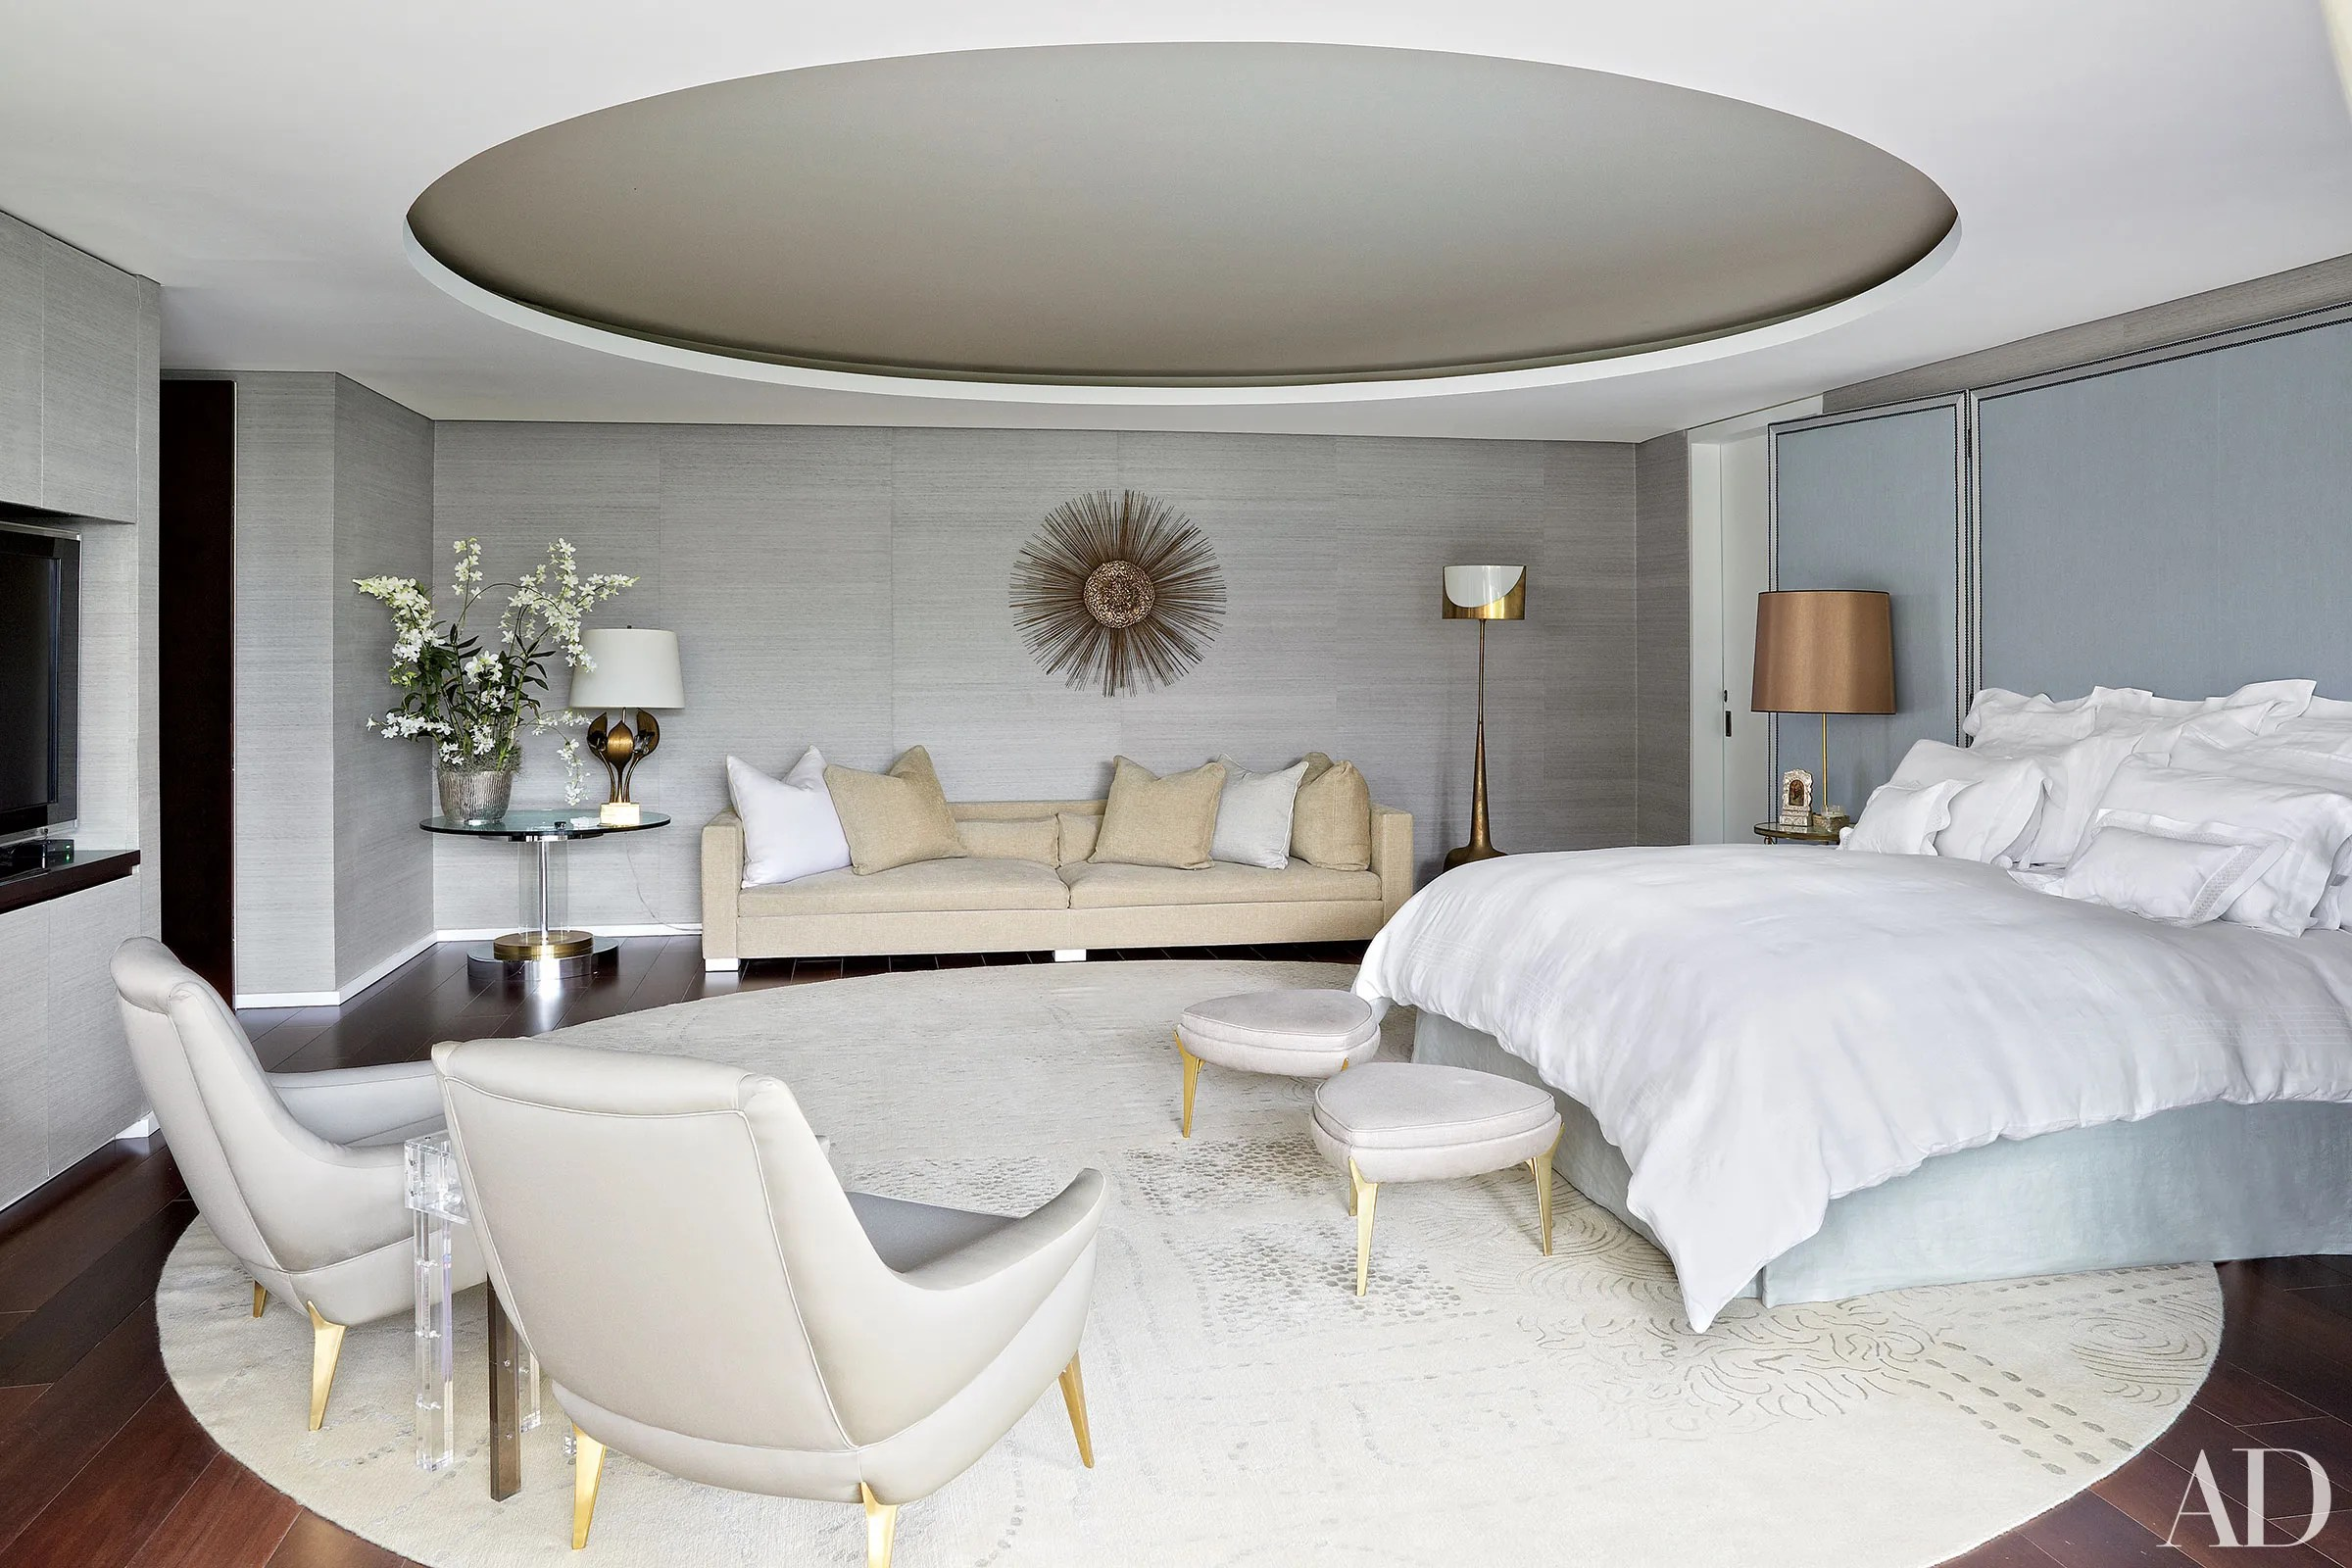 17 Sumptuous Bedrooms Perfect For Wintertime Lounging